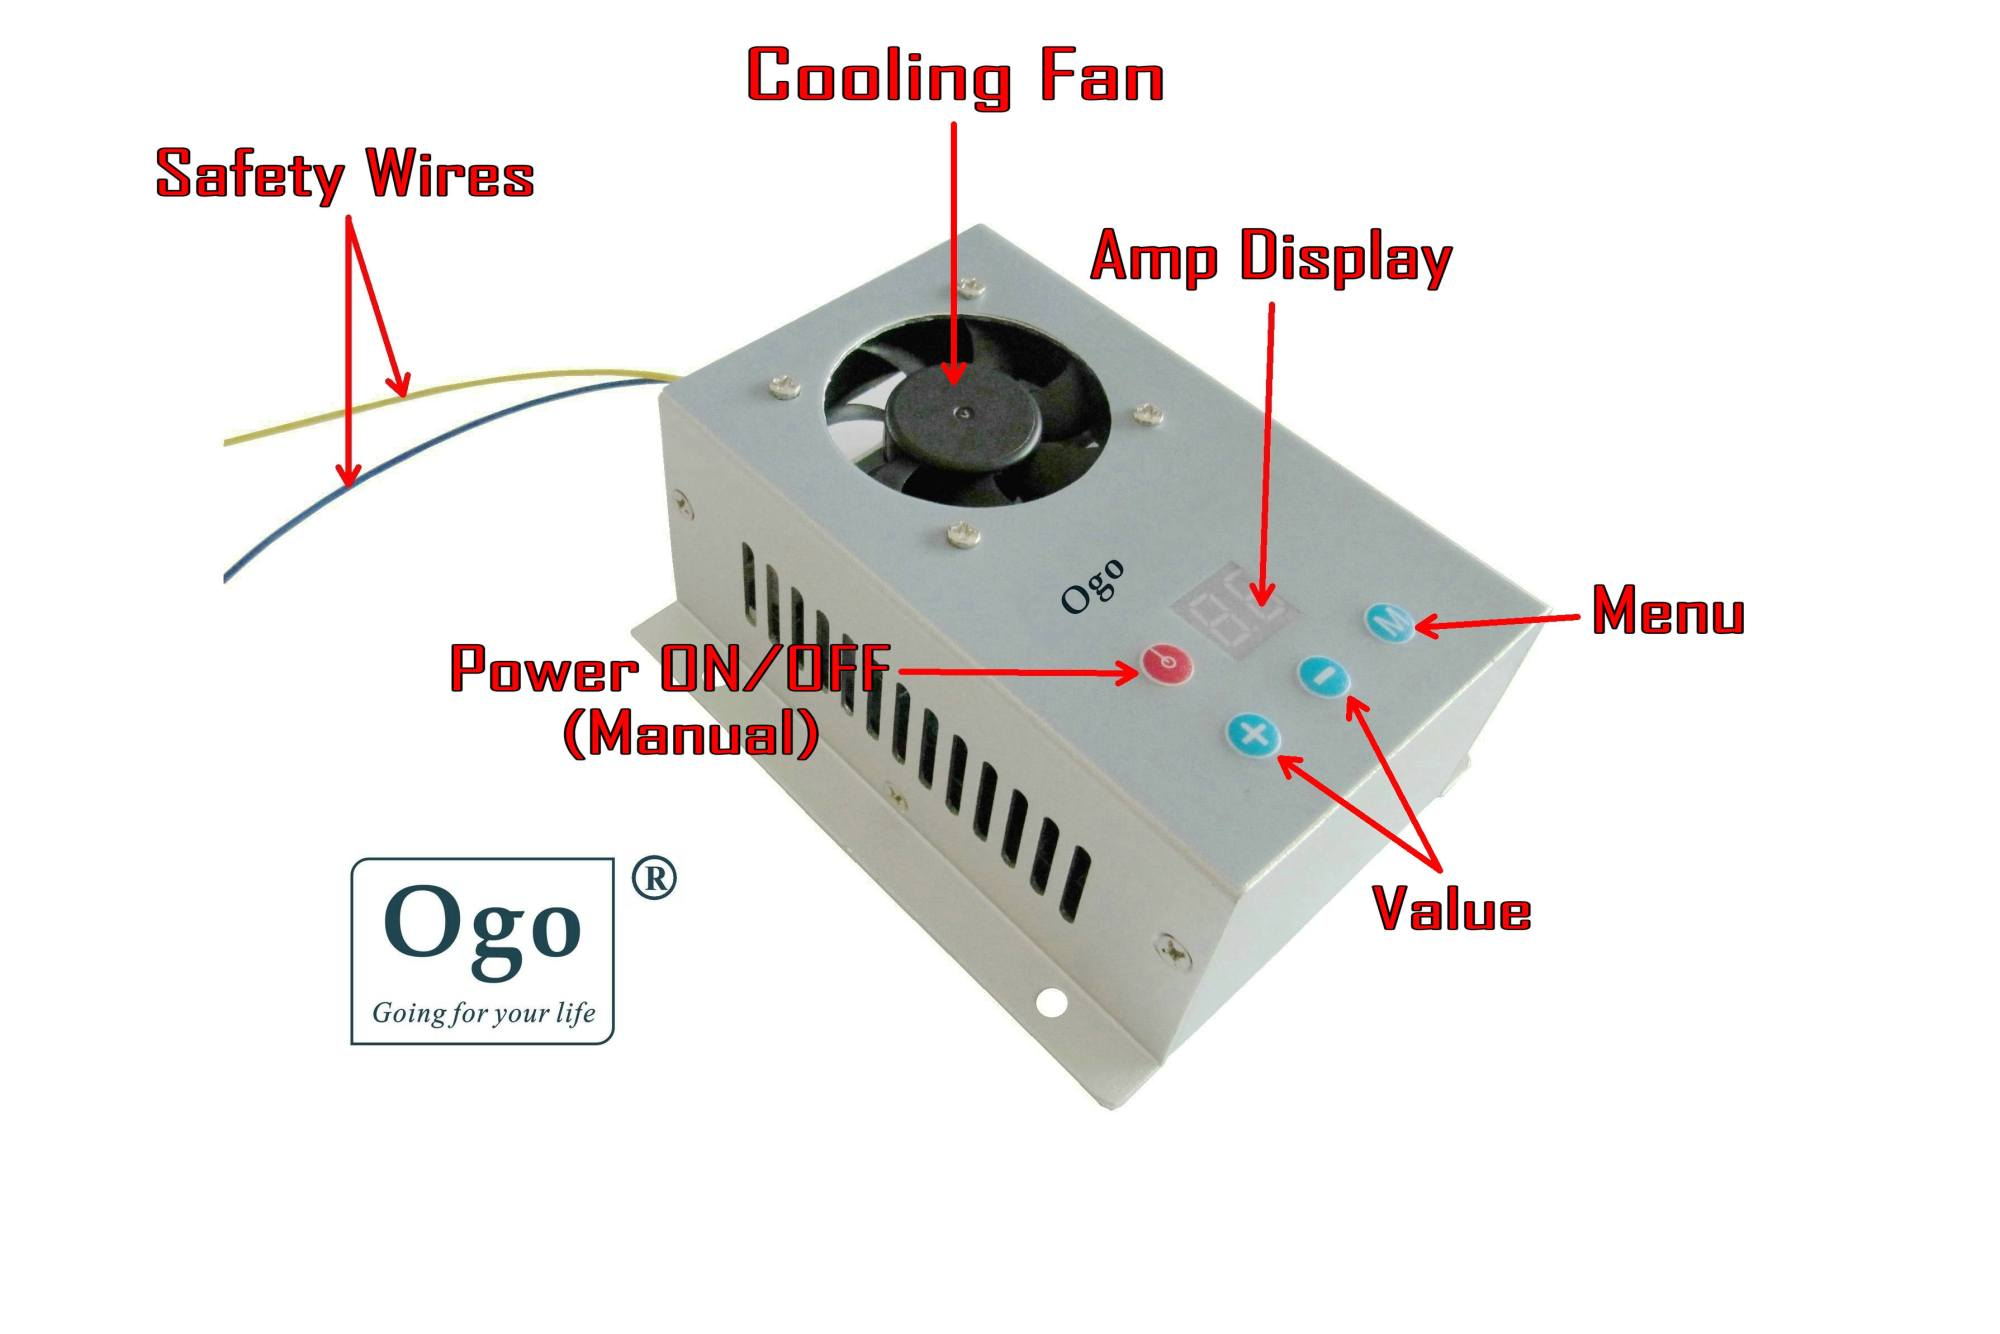 hight resolution of ogo pwm wiring diagram 70 wiring diagram ogo pwm wiring diagram 70